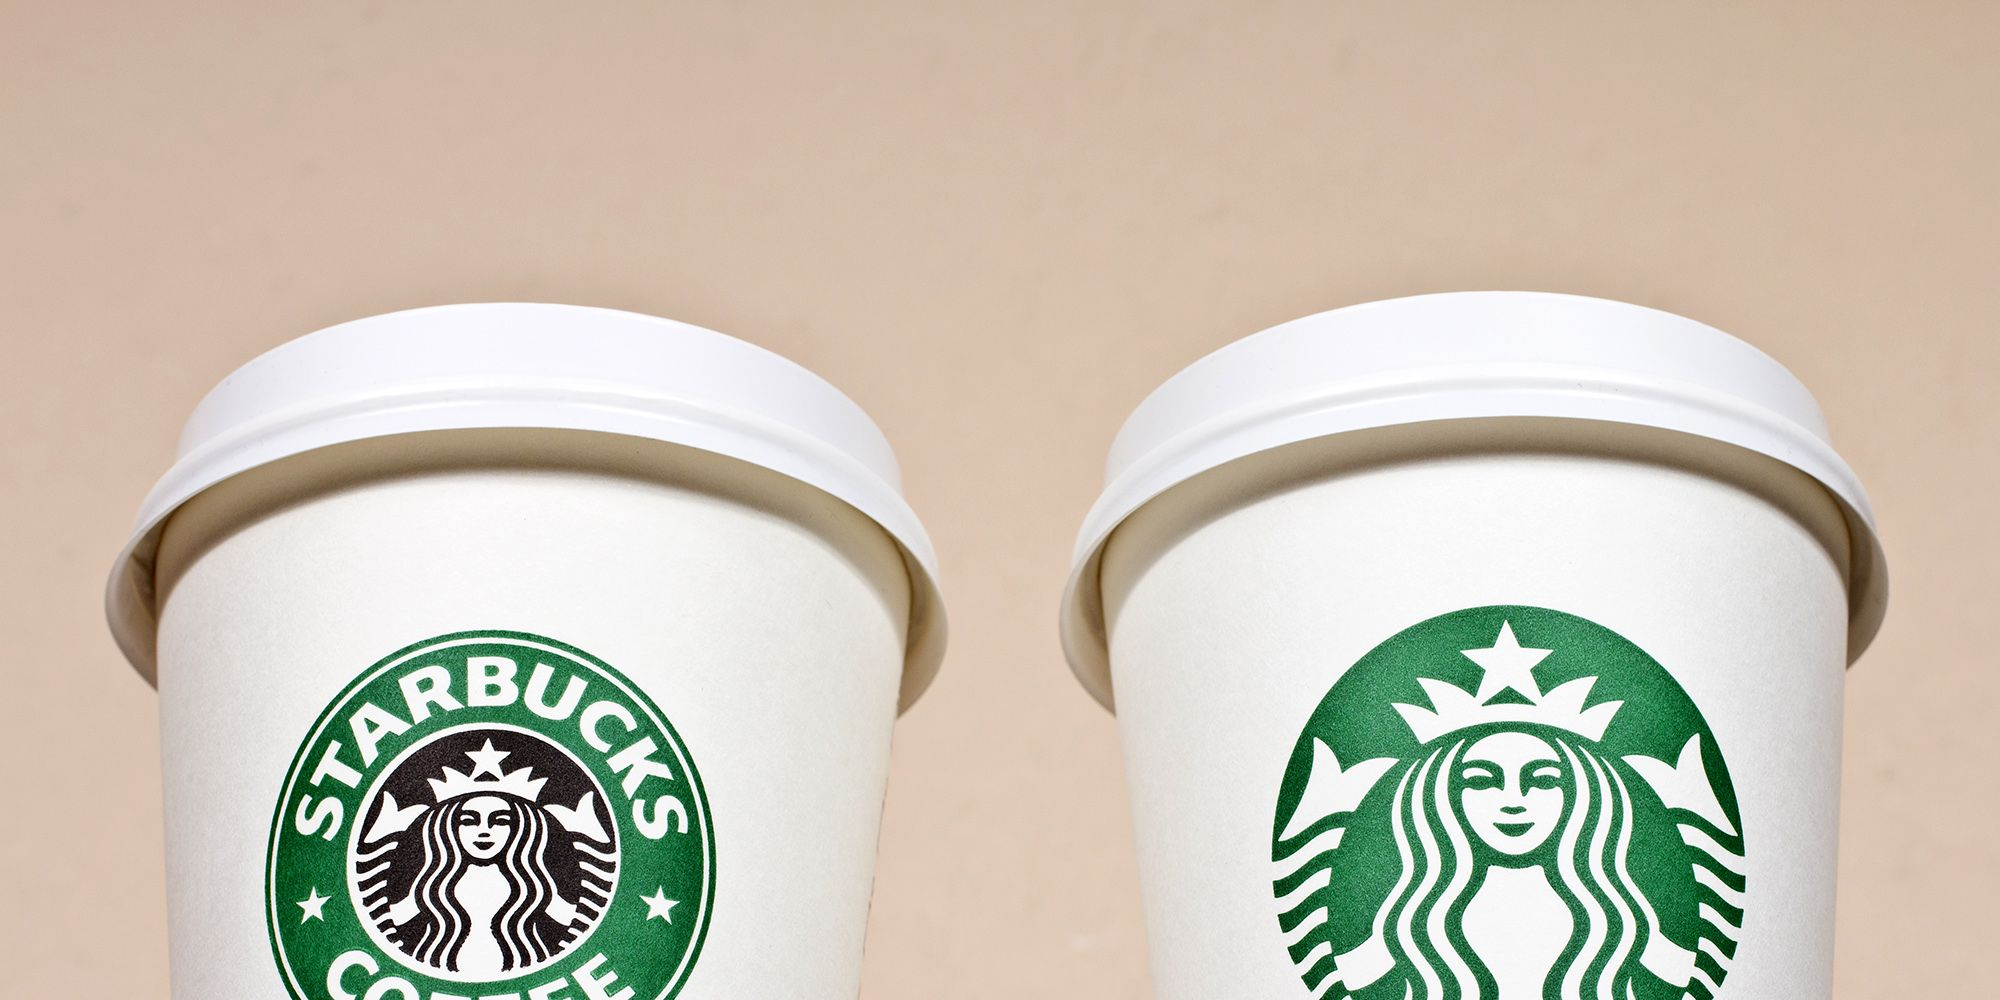 Starbucks disposable cups